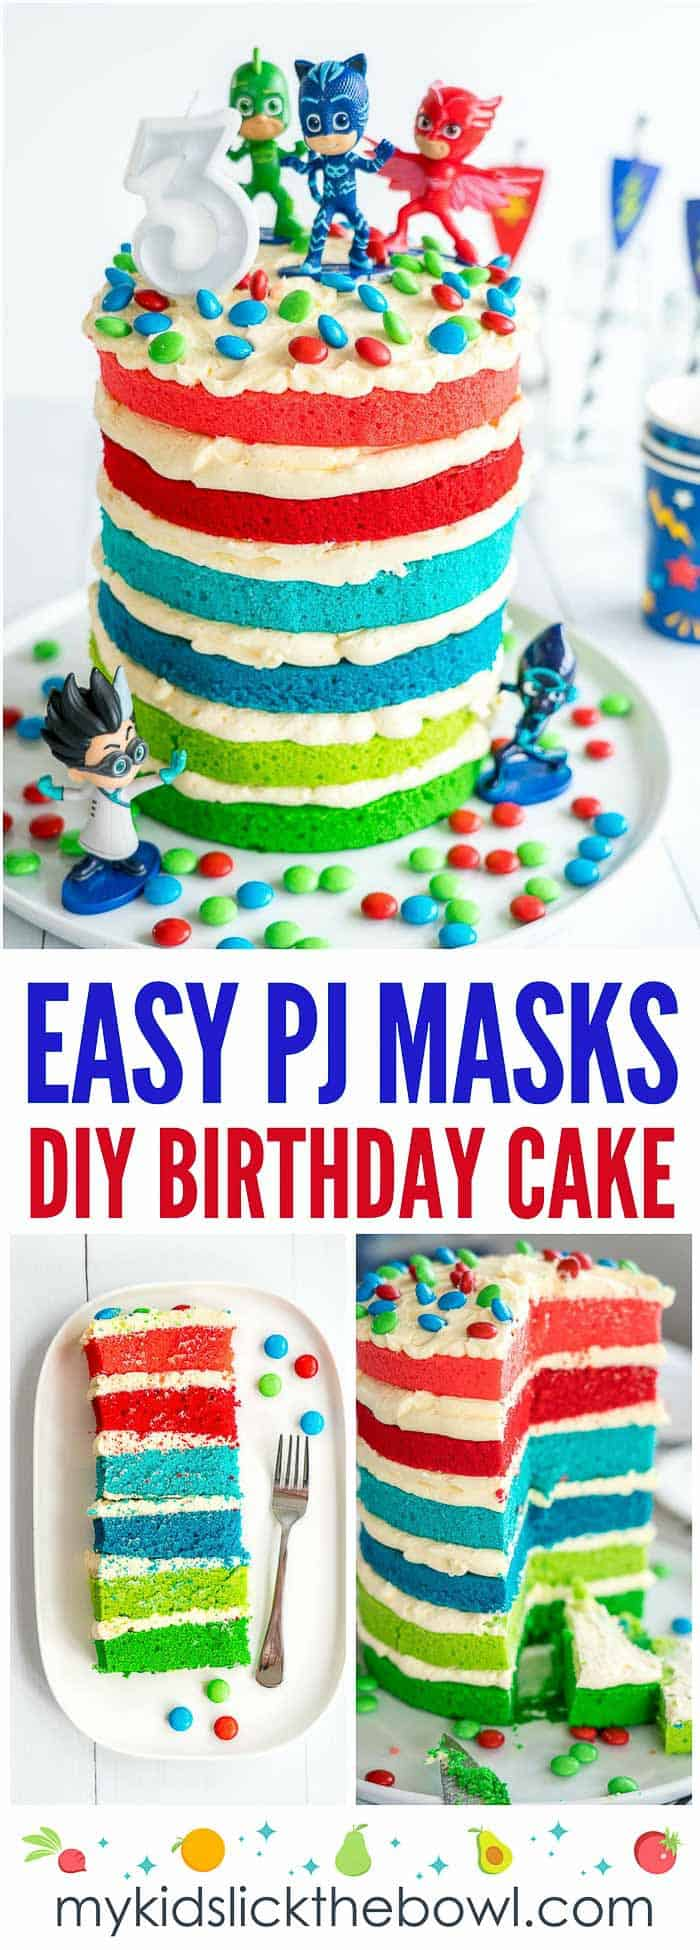 Pj Masks Cake Easy Diy Birthday Cake For Kids